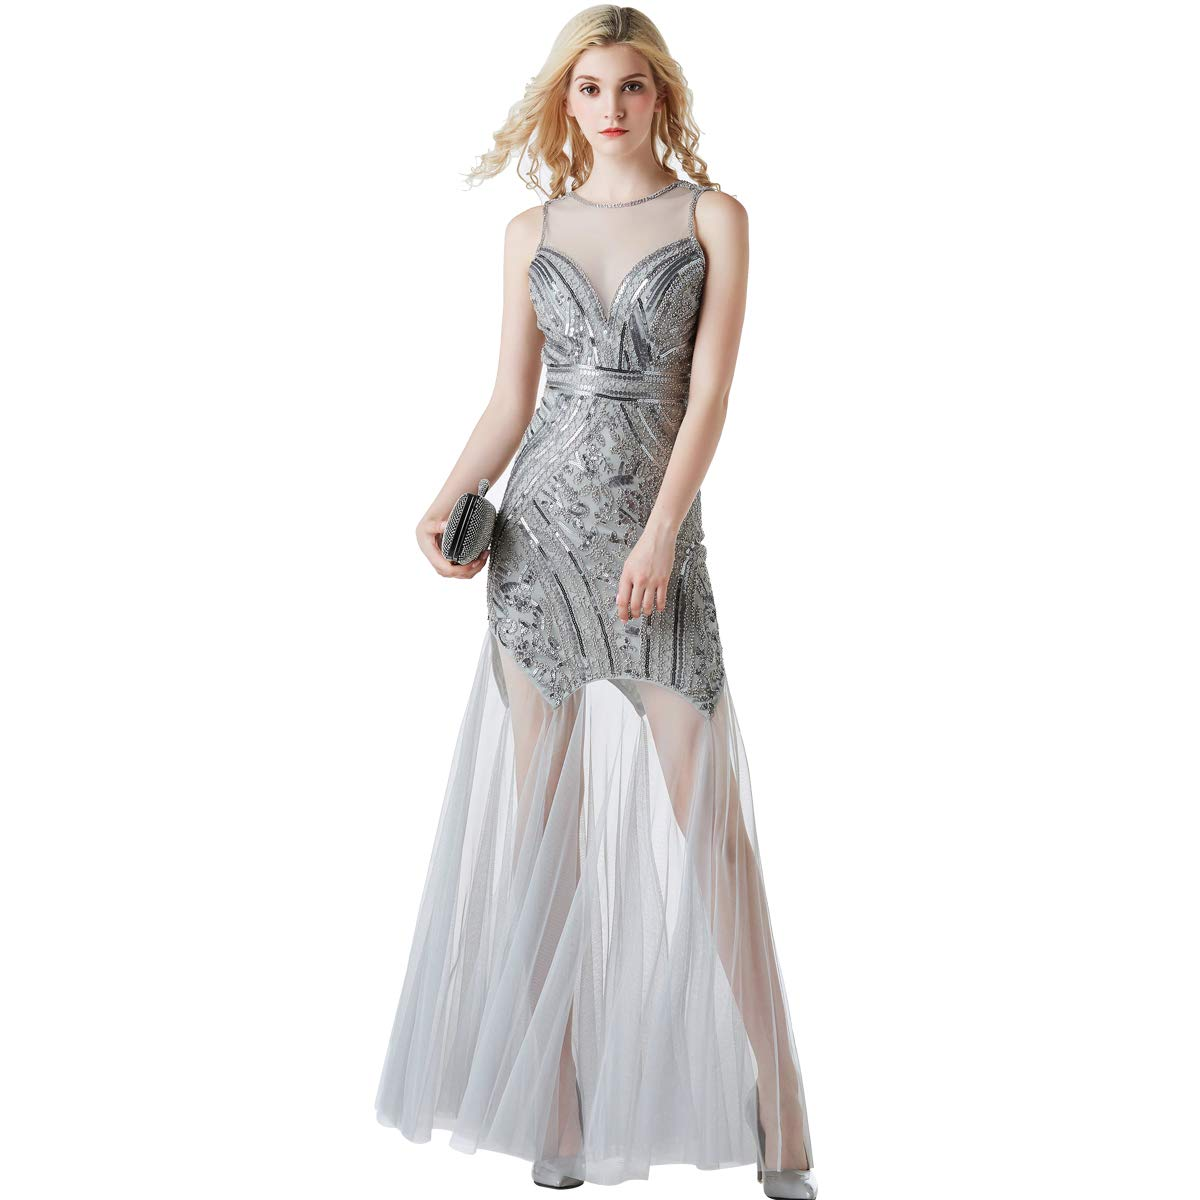 1920s Sequin Gatsby Maxi Long Evening Dress Semi Formal Wedding Dresses for  Women at Amazon Women s Clothing store  f44c17796